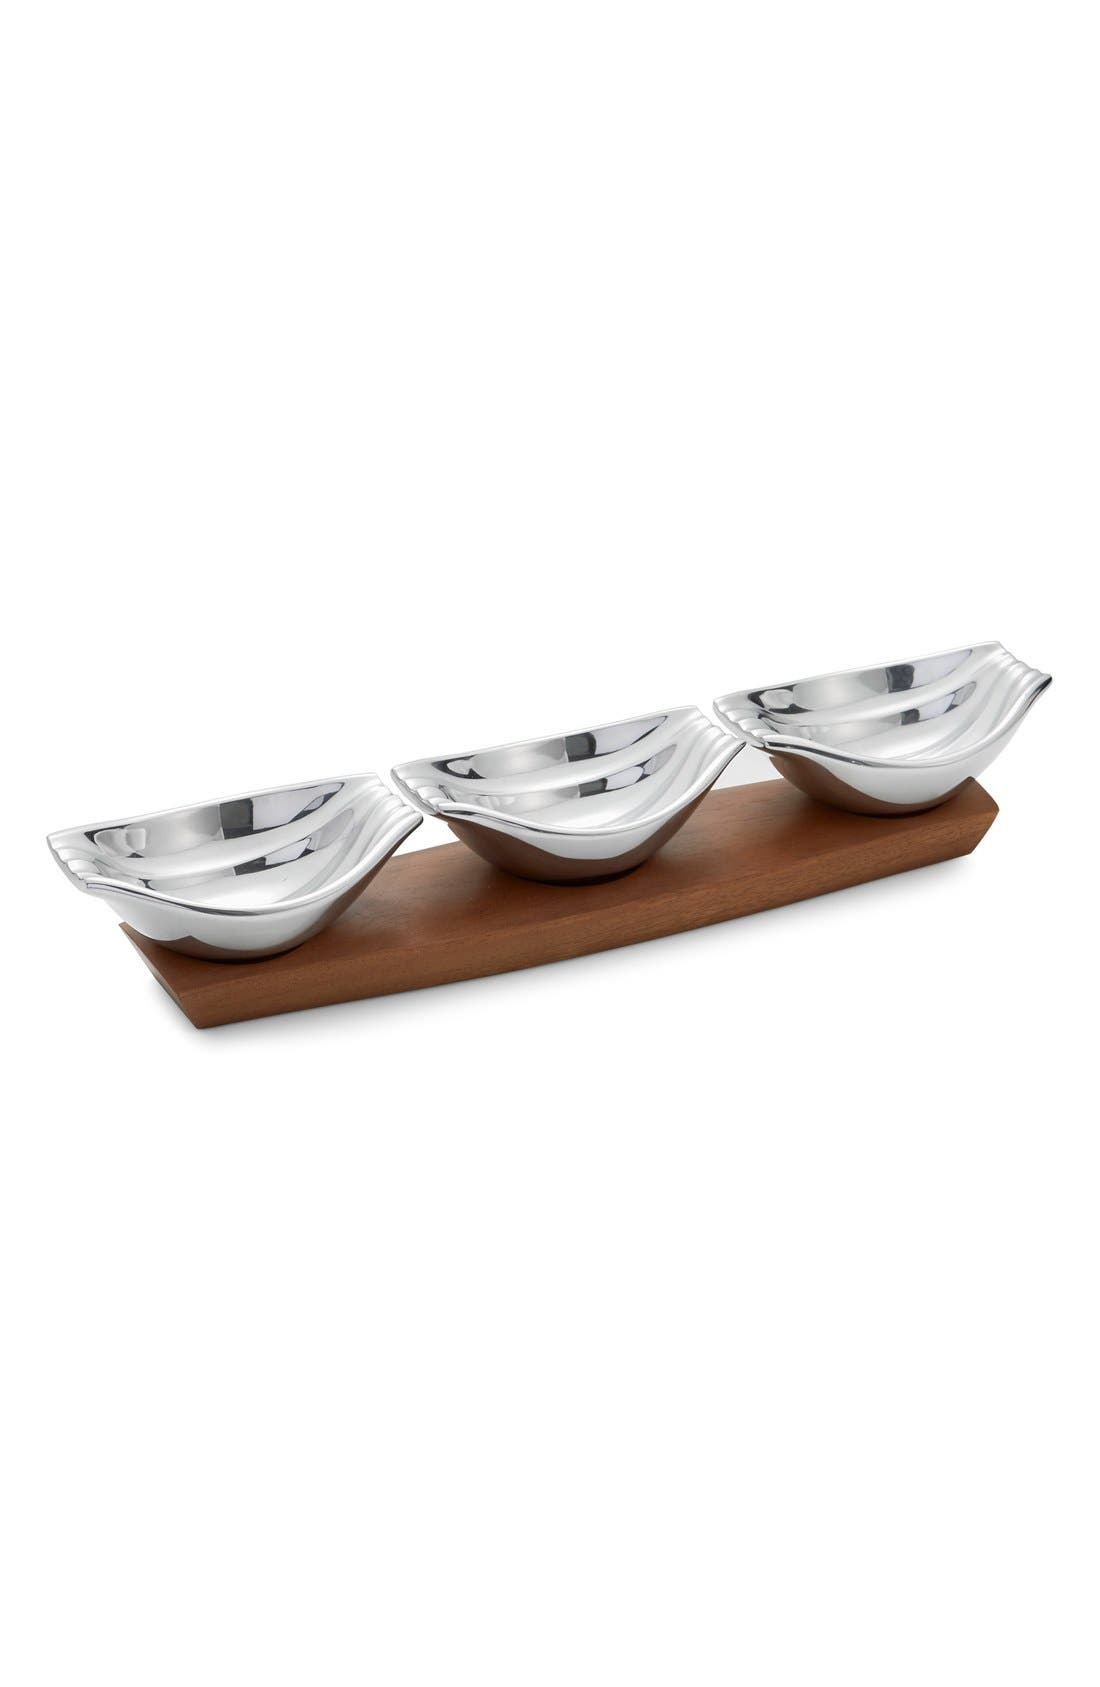 'Drift' Condiment Server,                             Alternate thumbnail 3, color,                             Silver